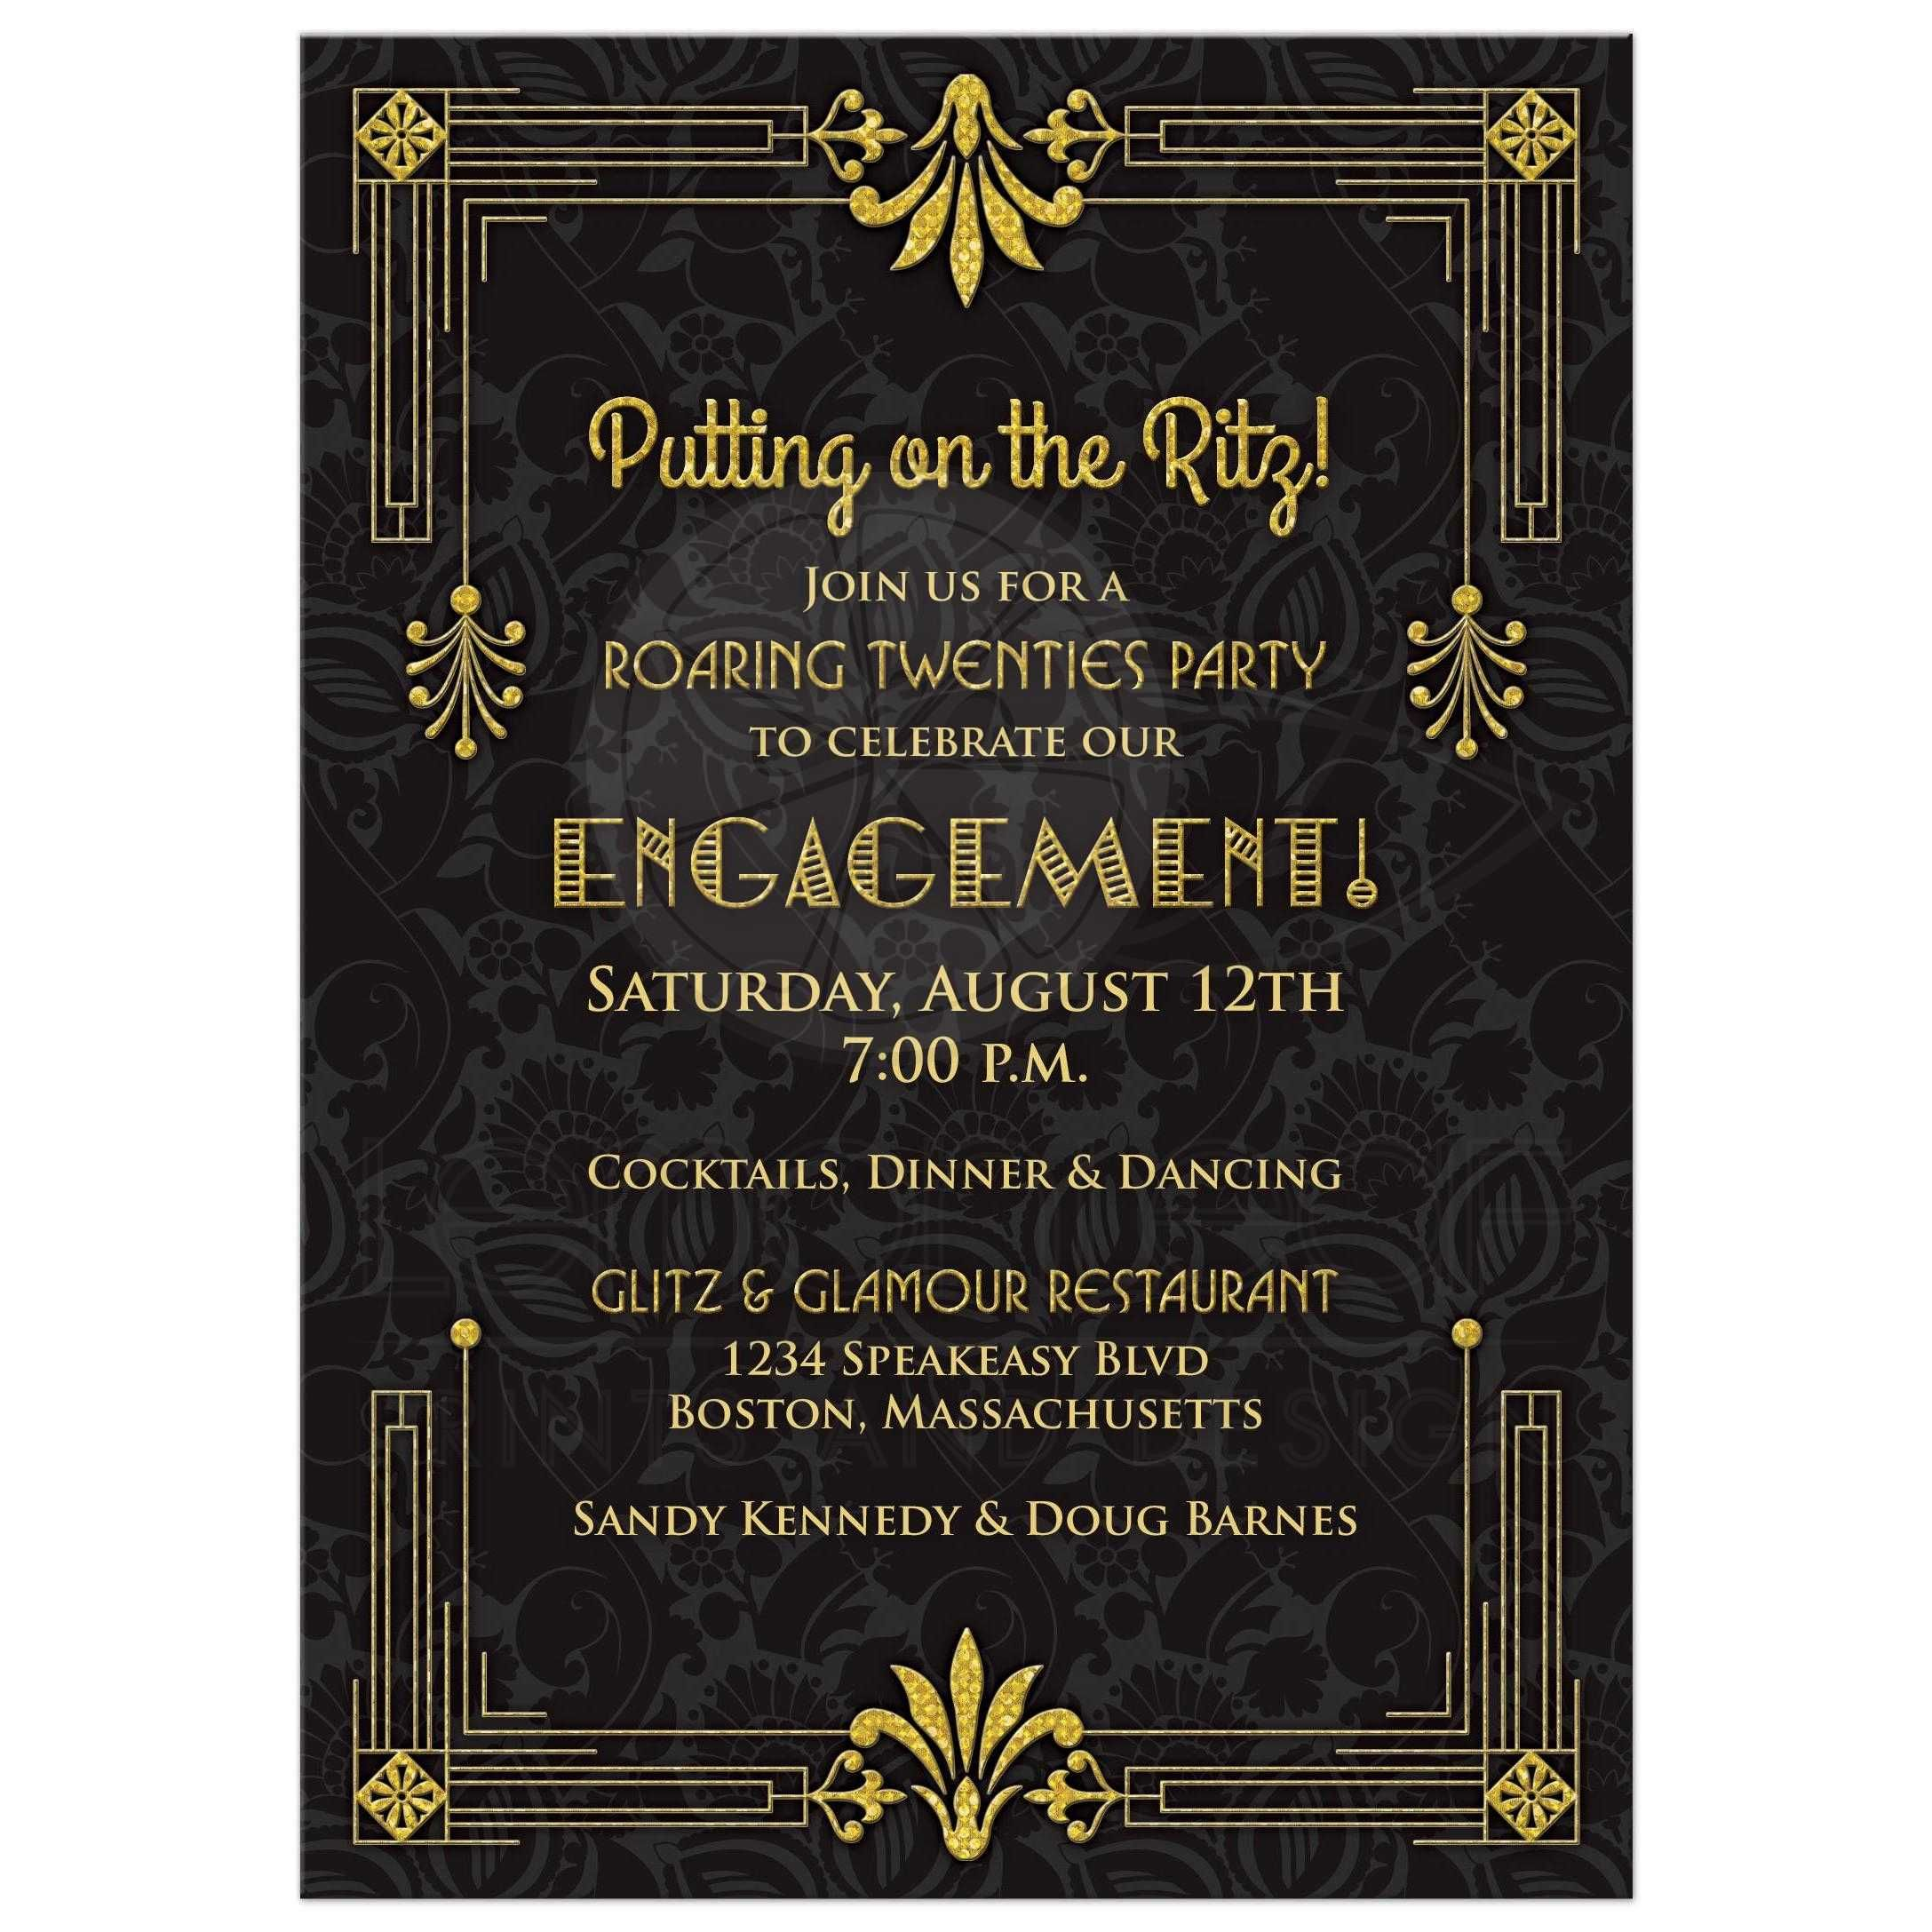 Roaring 20s Engagement Party Invitation Black Gold Art Deco – Art Deco Party Invitations